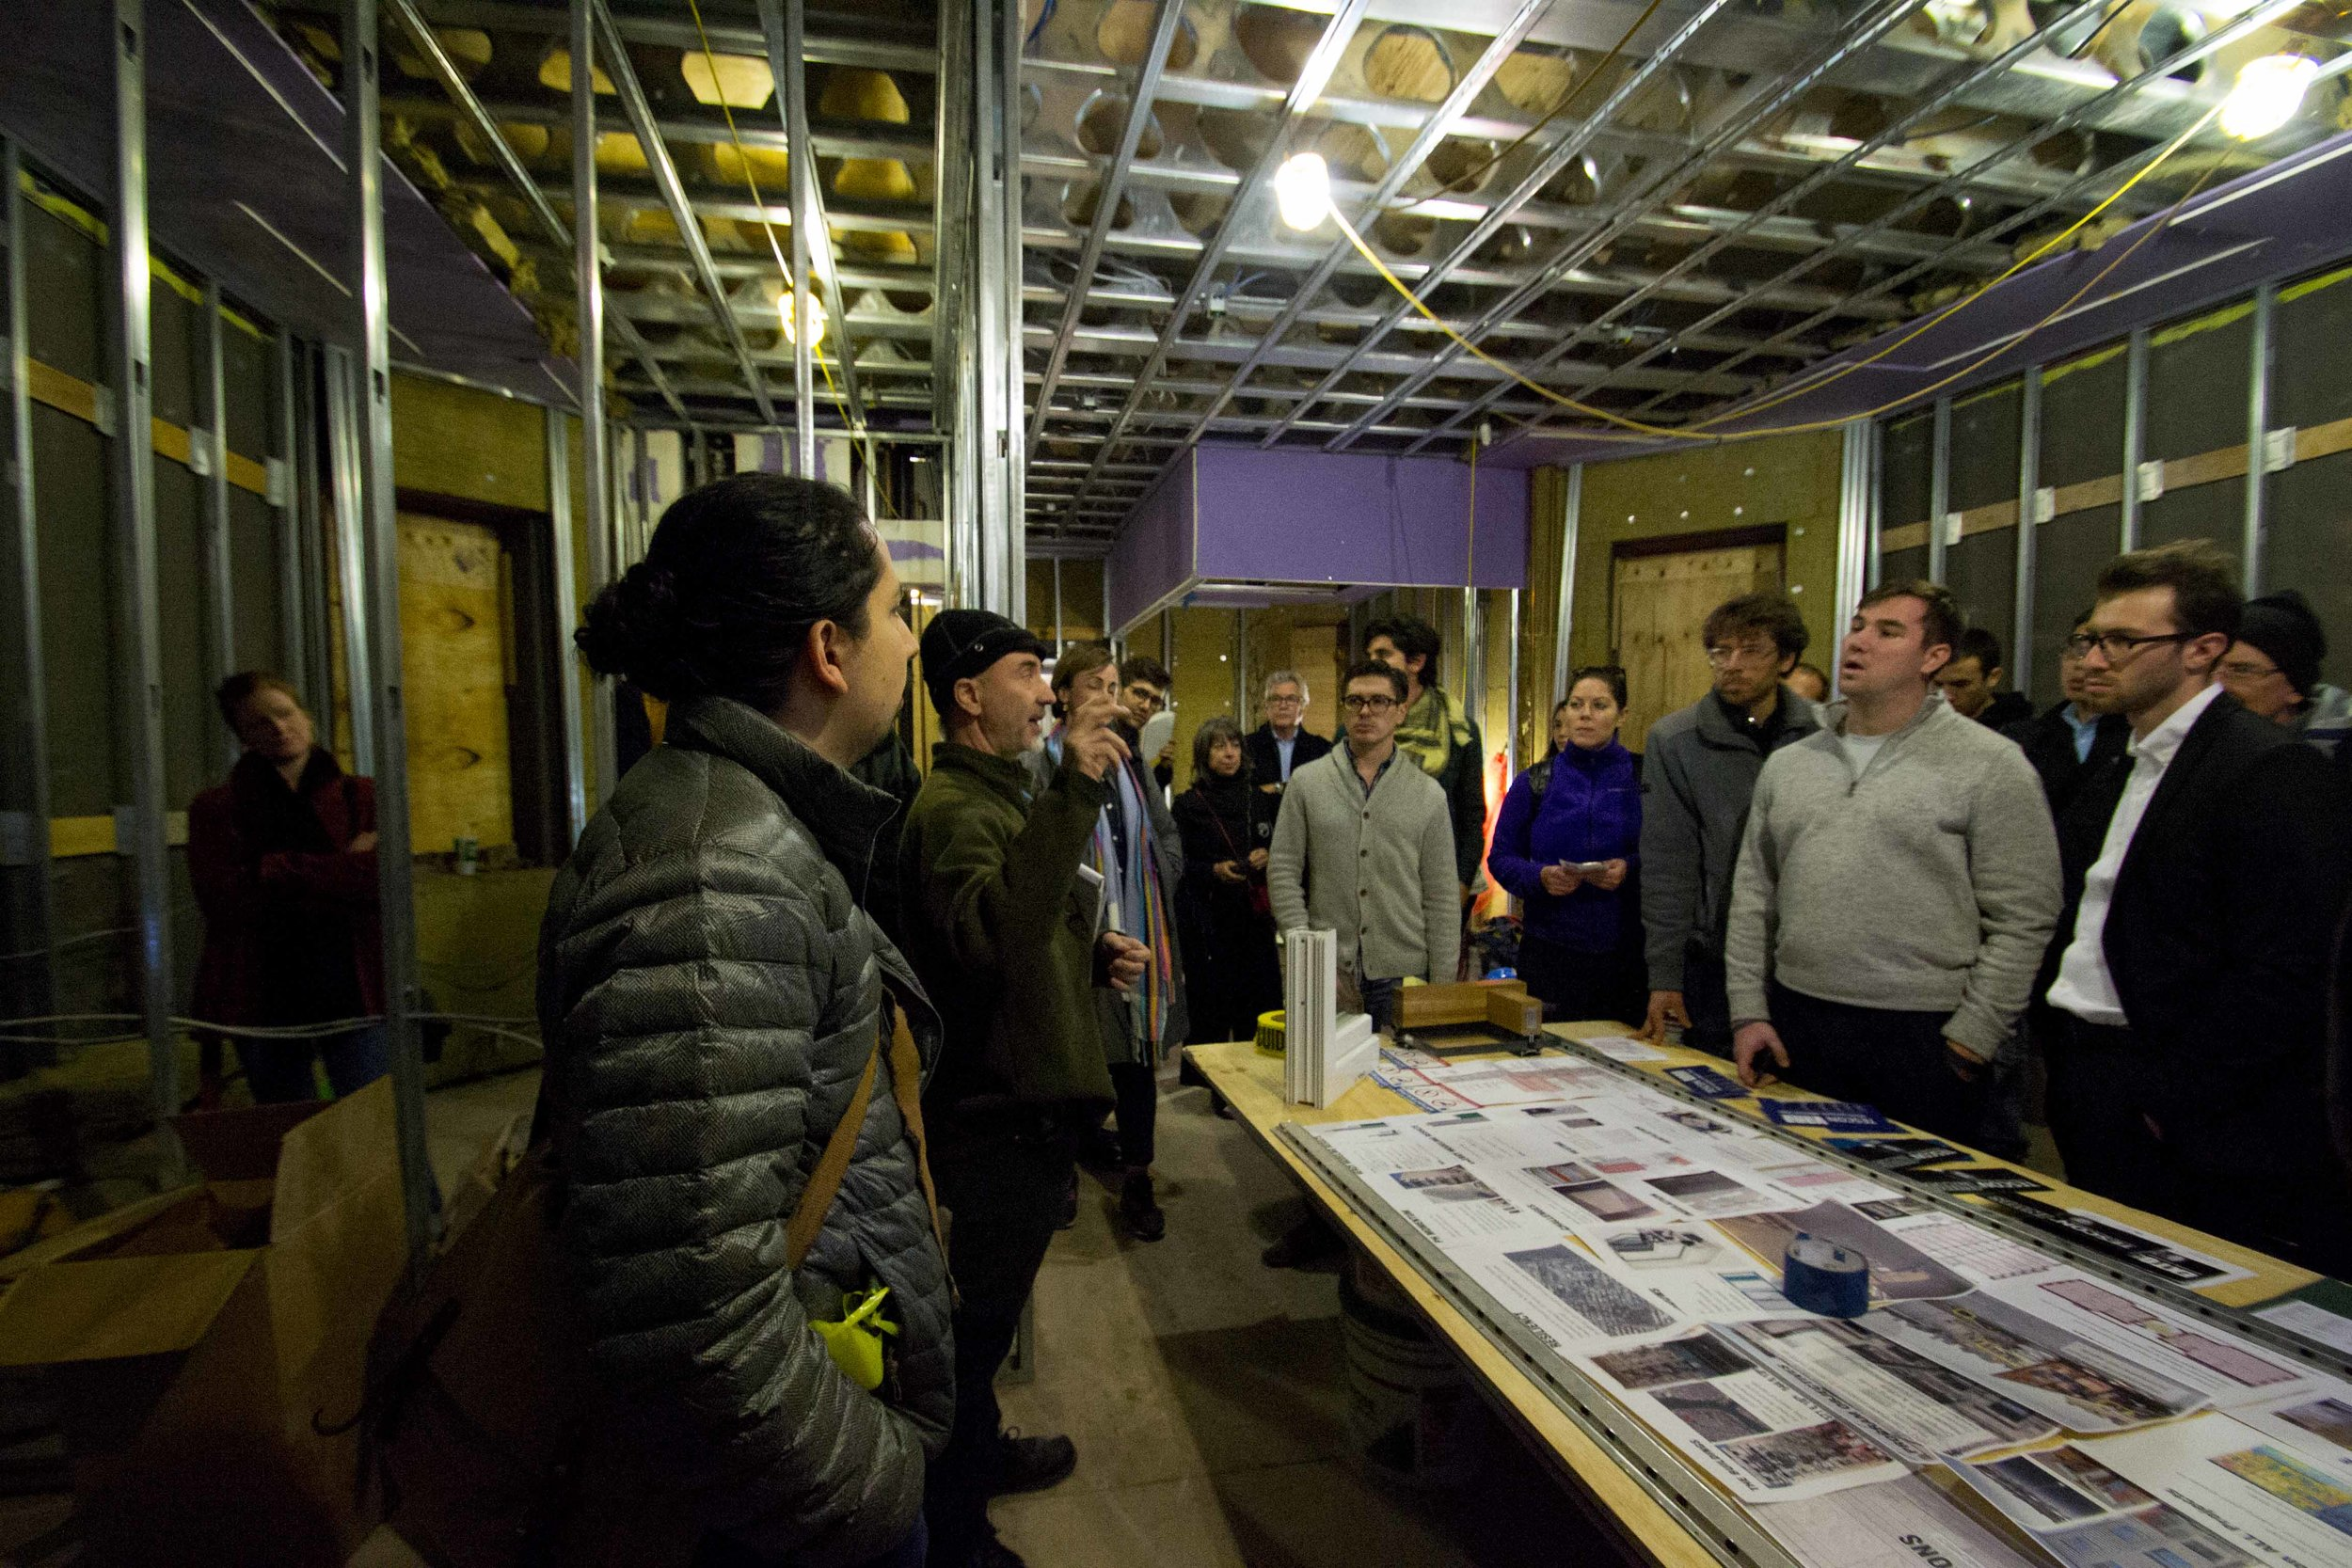 20161111__NY PASSIVE HOUSE DAYS_OPEN HOUSE_PAUL CASTRUCCI ARCHITECT__0074_lowres.jpg